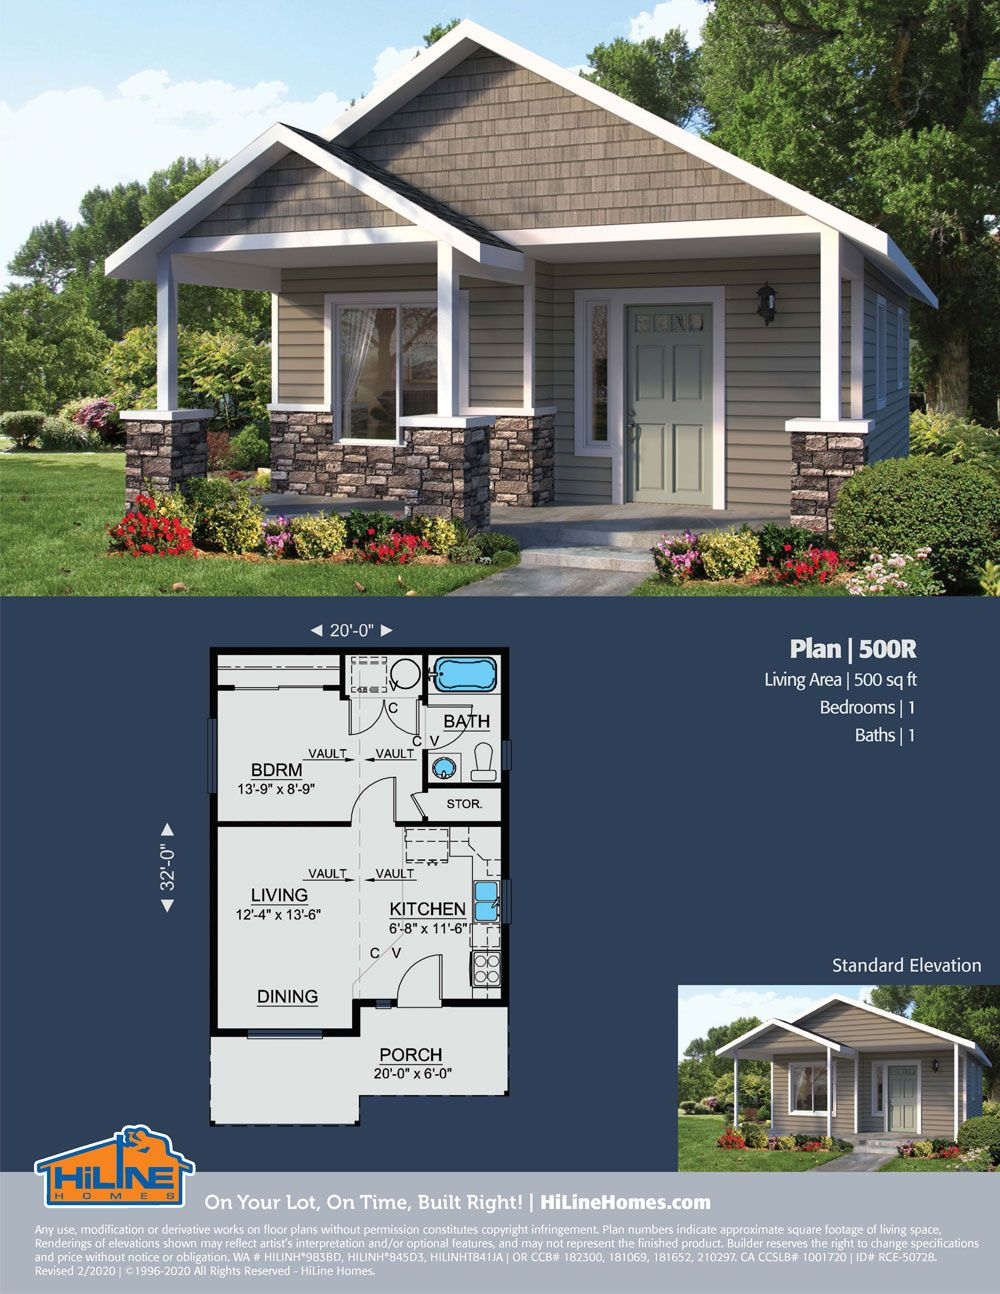 Hiline Homes Plan 500 In 2020 House Plans Floor Plans Vacation Home